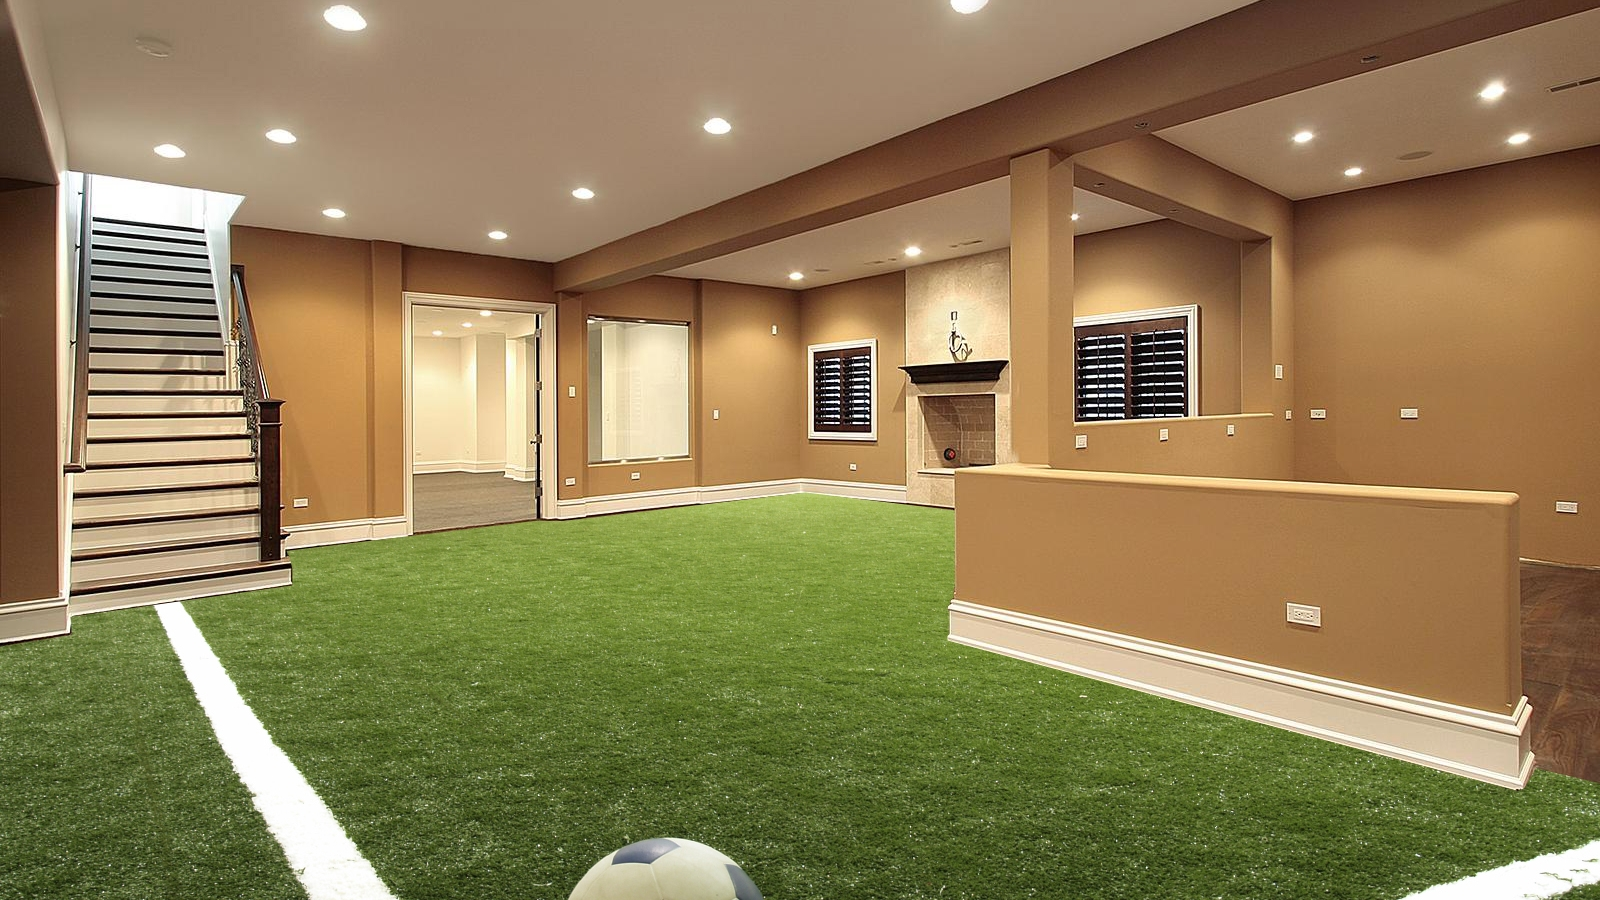 Basement with synthetic turf football